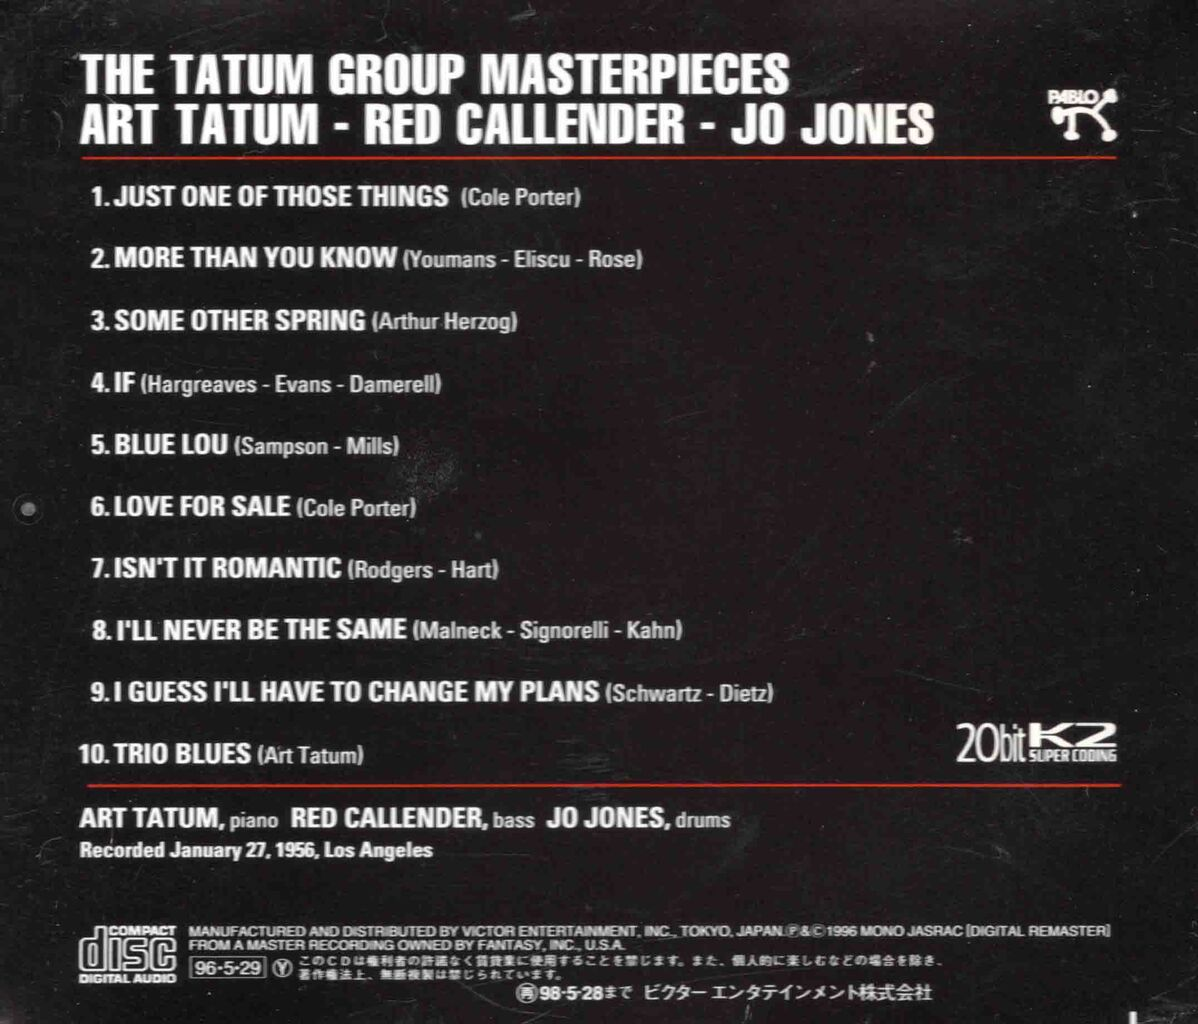 THE ART TATUM GROUP MASTERPIECES-2